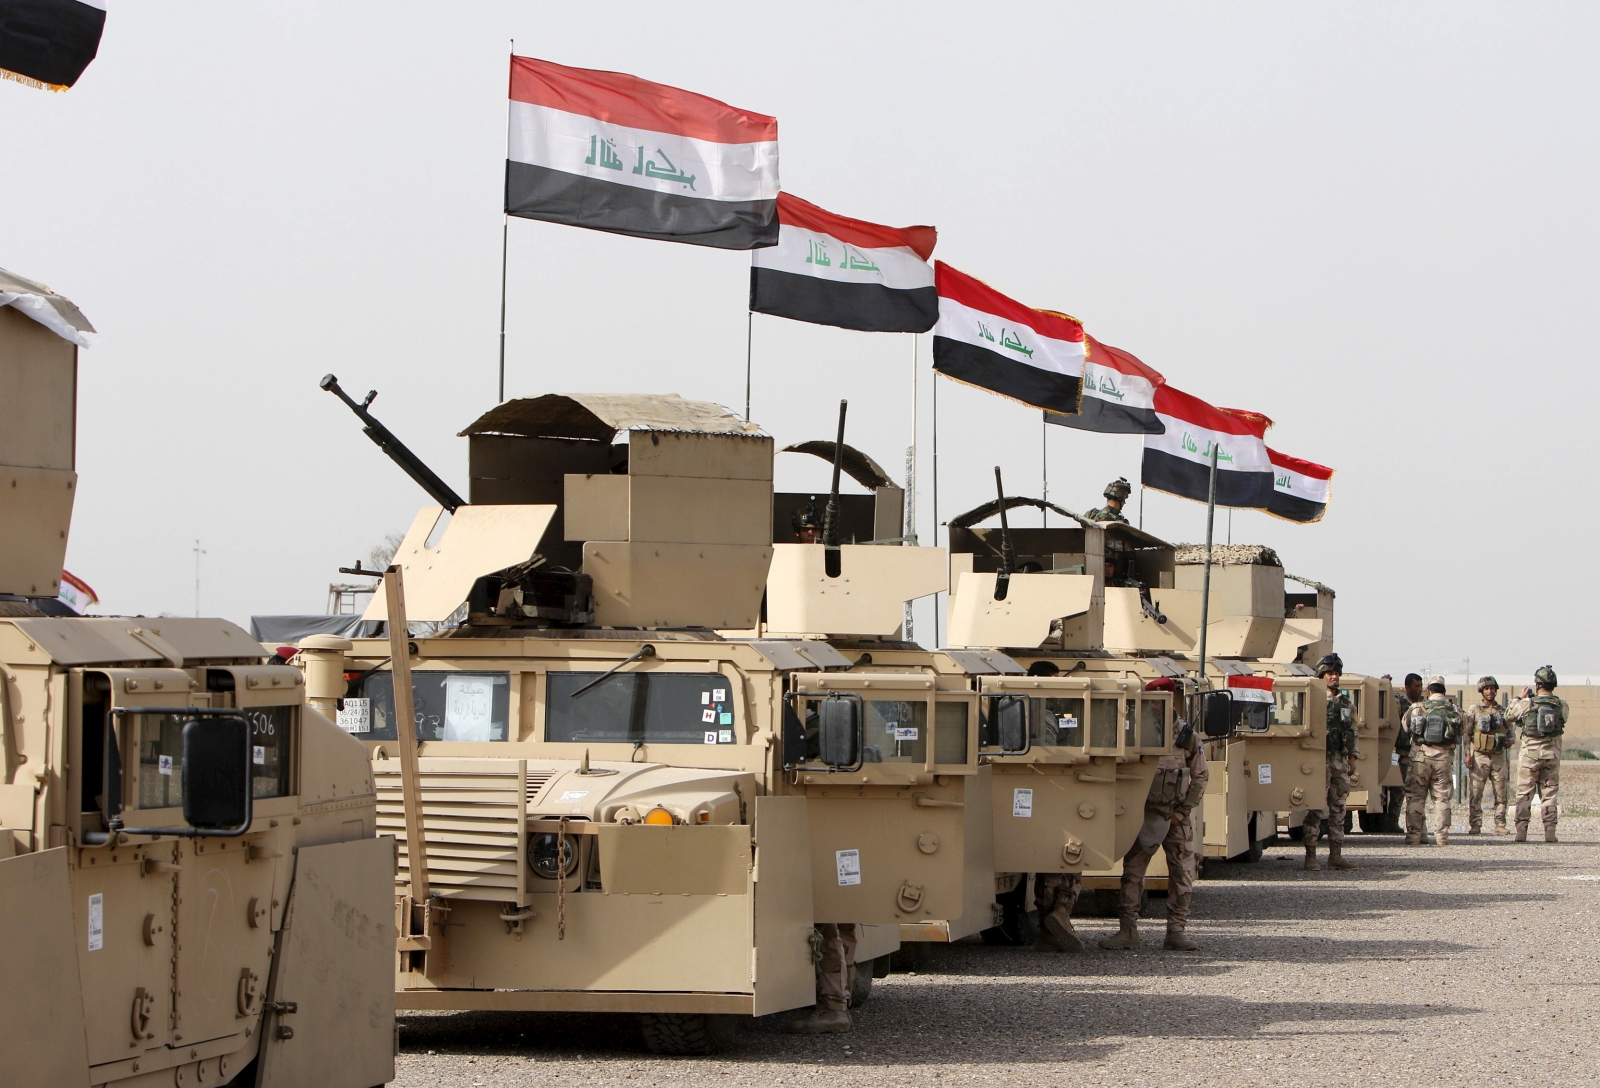 Isis in Iraq